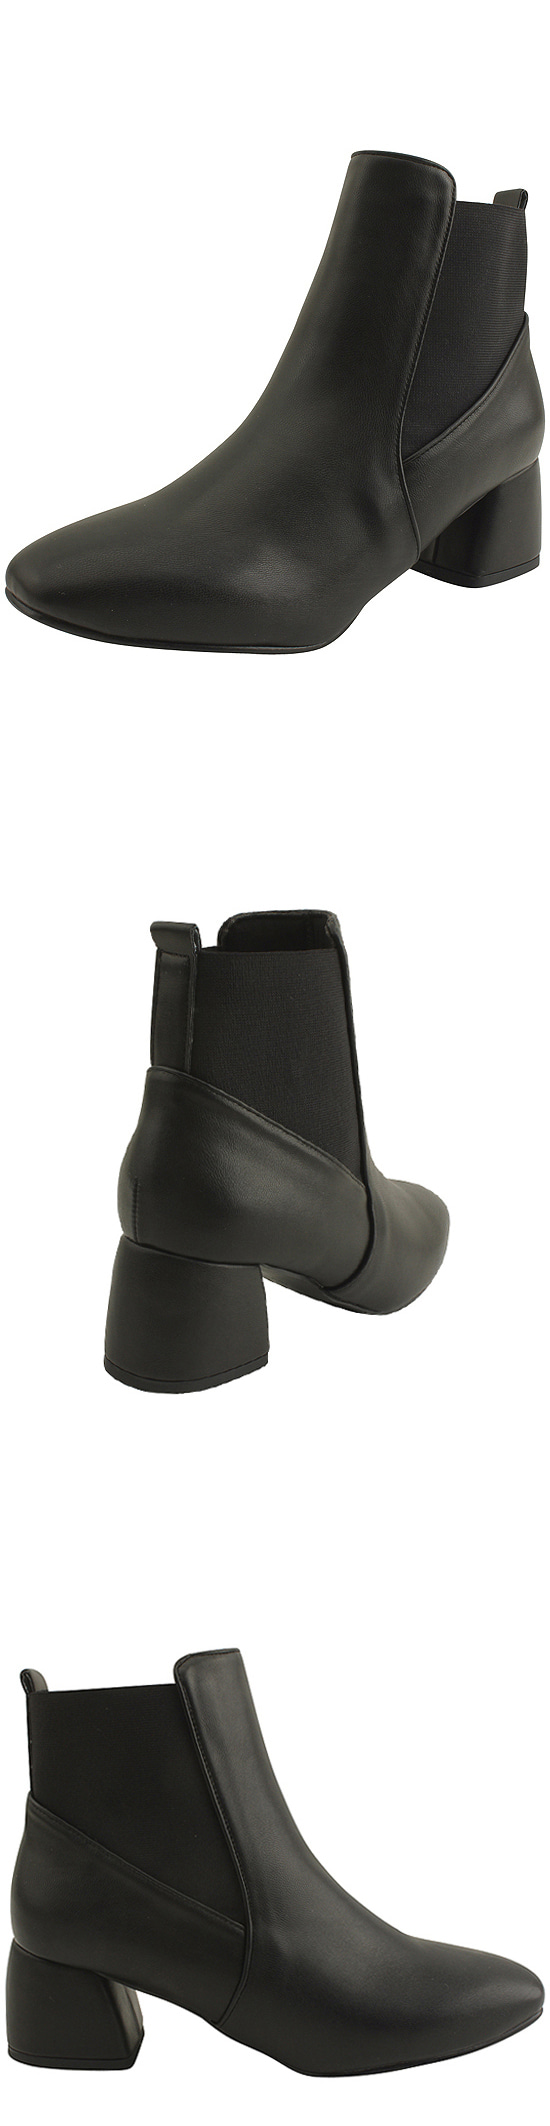 Banding Chelsea Ankle Boots Full Heel Middle Hill